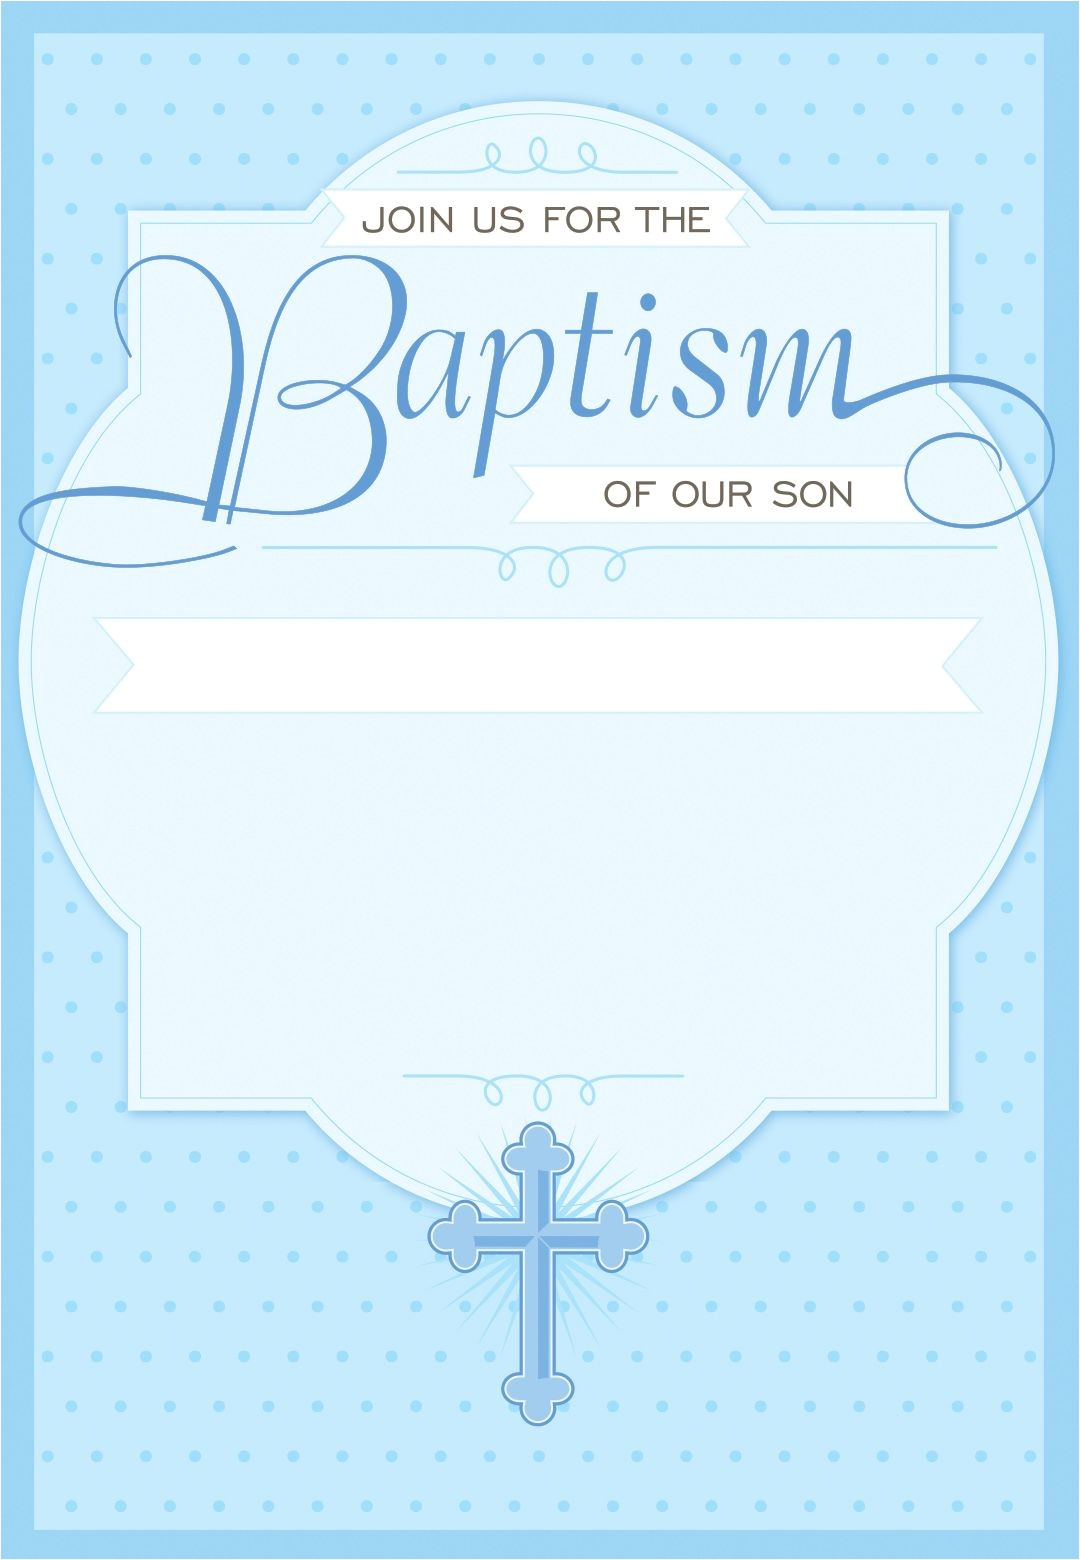 Free Printable Boy Baptism Invitations Dotted Blue Free Printable Baptism & Christening